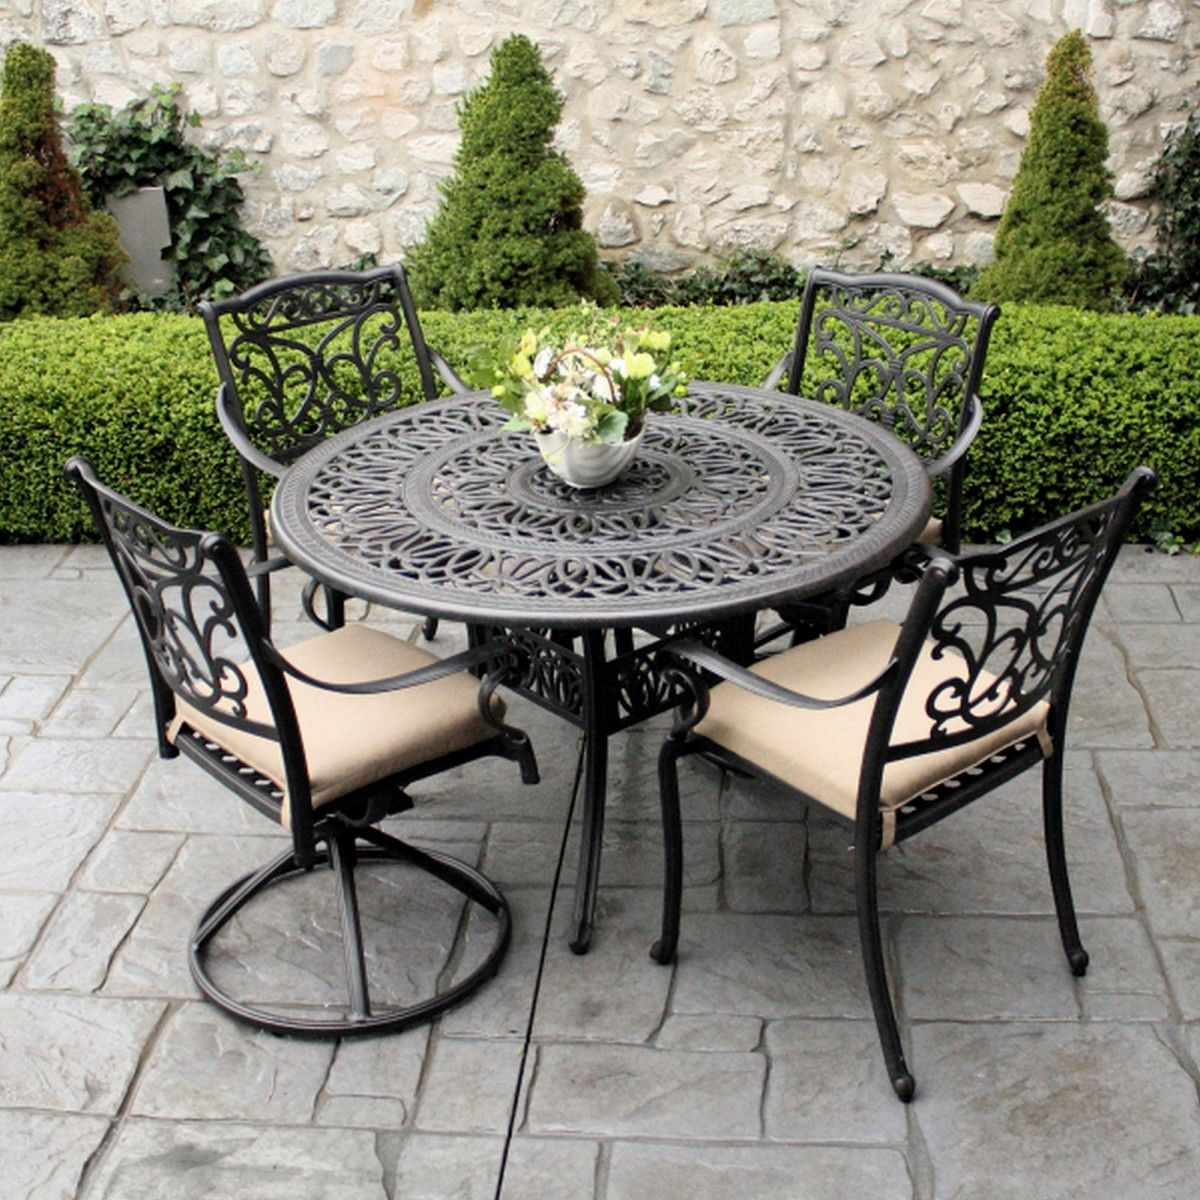 Wrought Iron Patio Furniture Gorgeous Rod Iron Patio Furniture